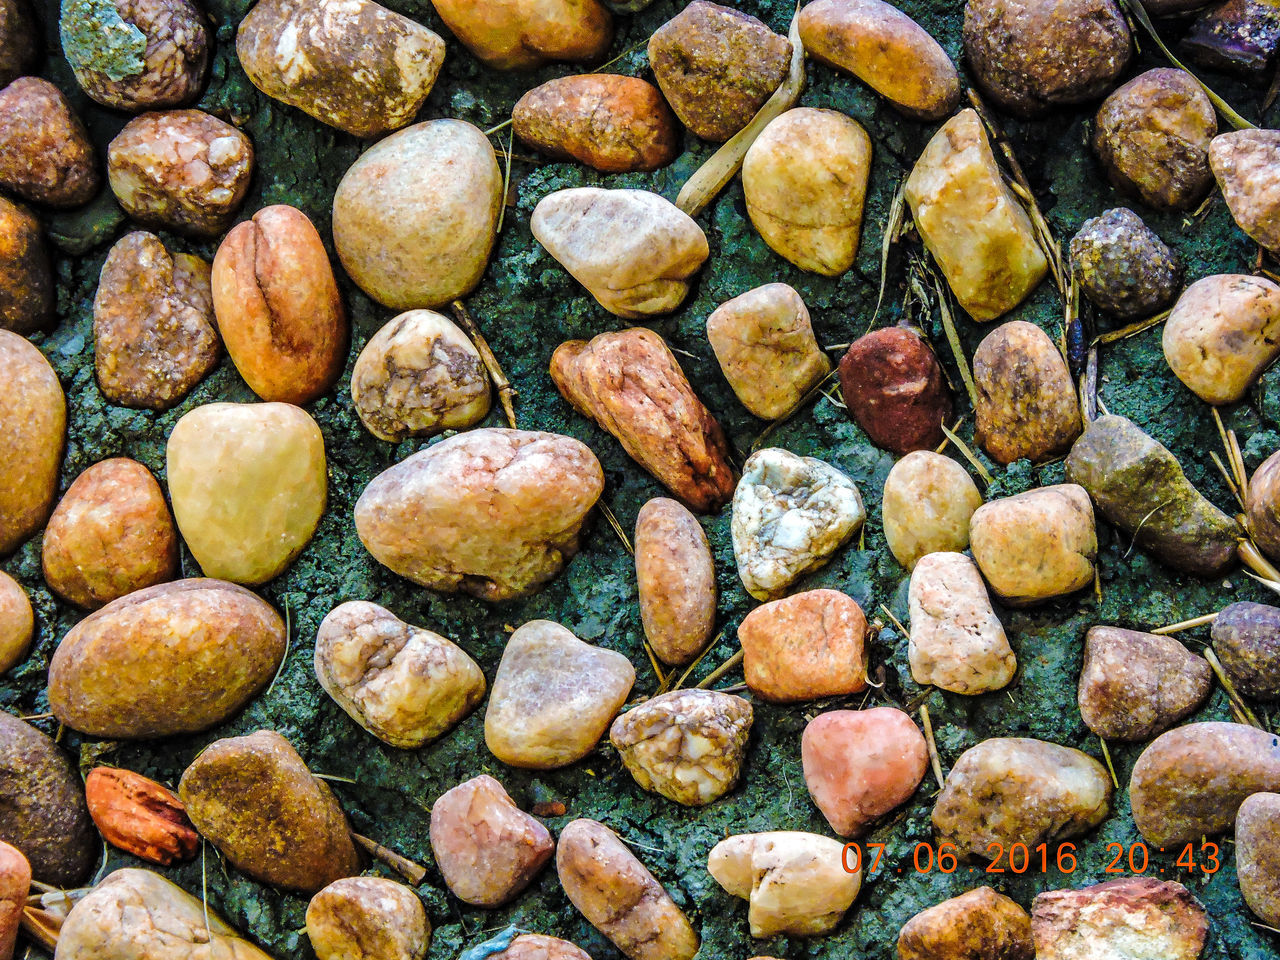 full frame, large group of objects, backgrounds, food and drink, food, abundance, no people, close-up, healthy eating, day, outdoors, nature, freshness, pebble beach